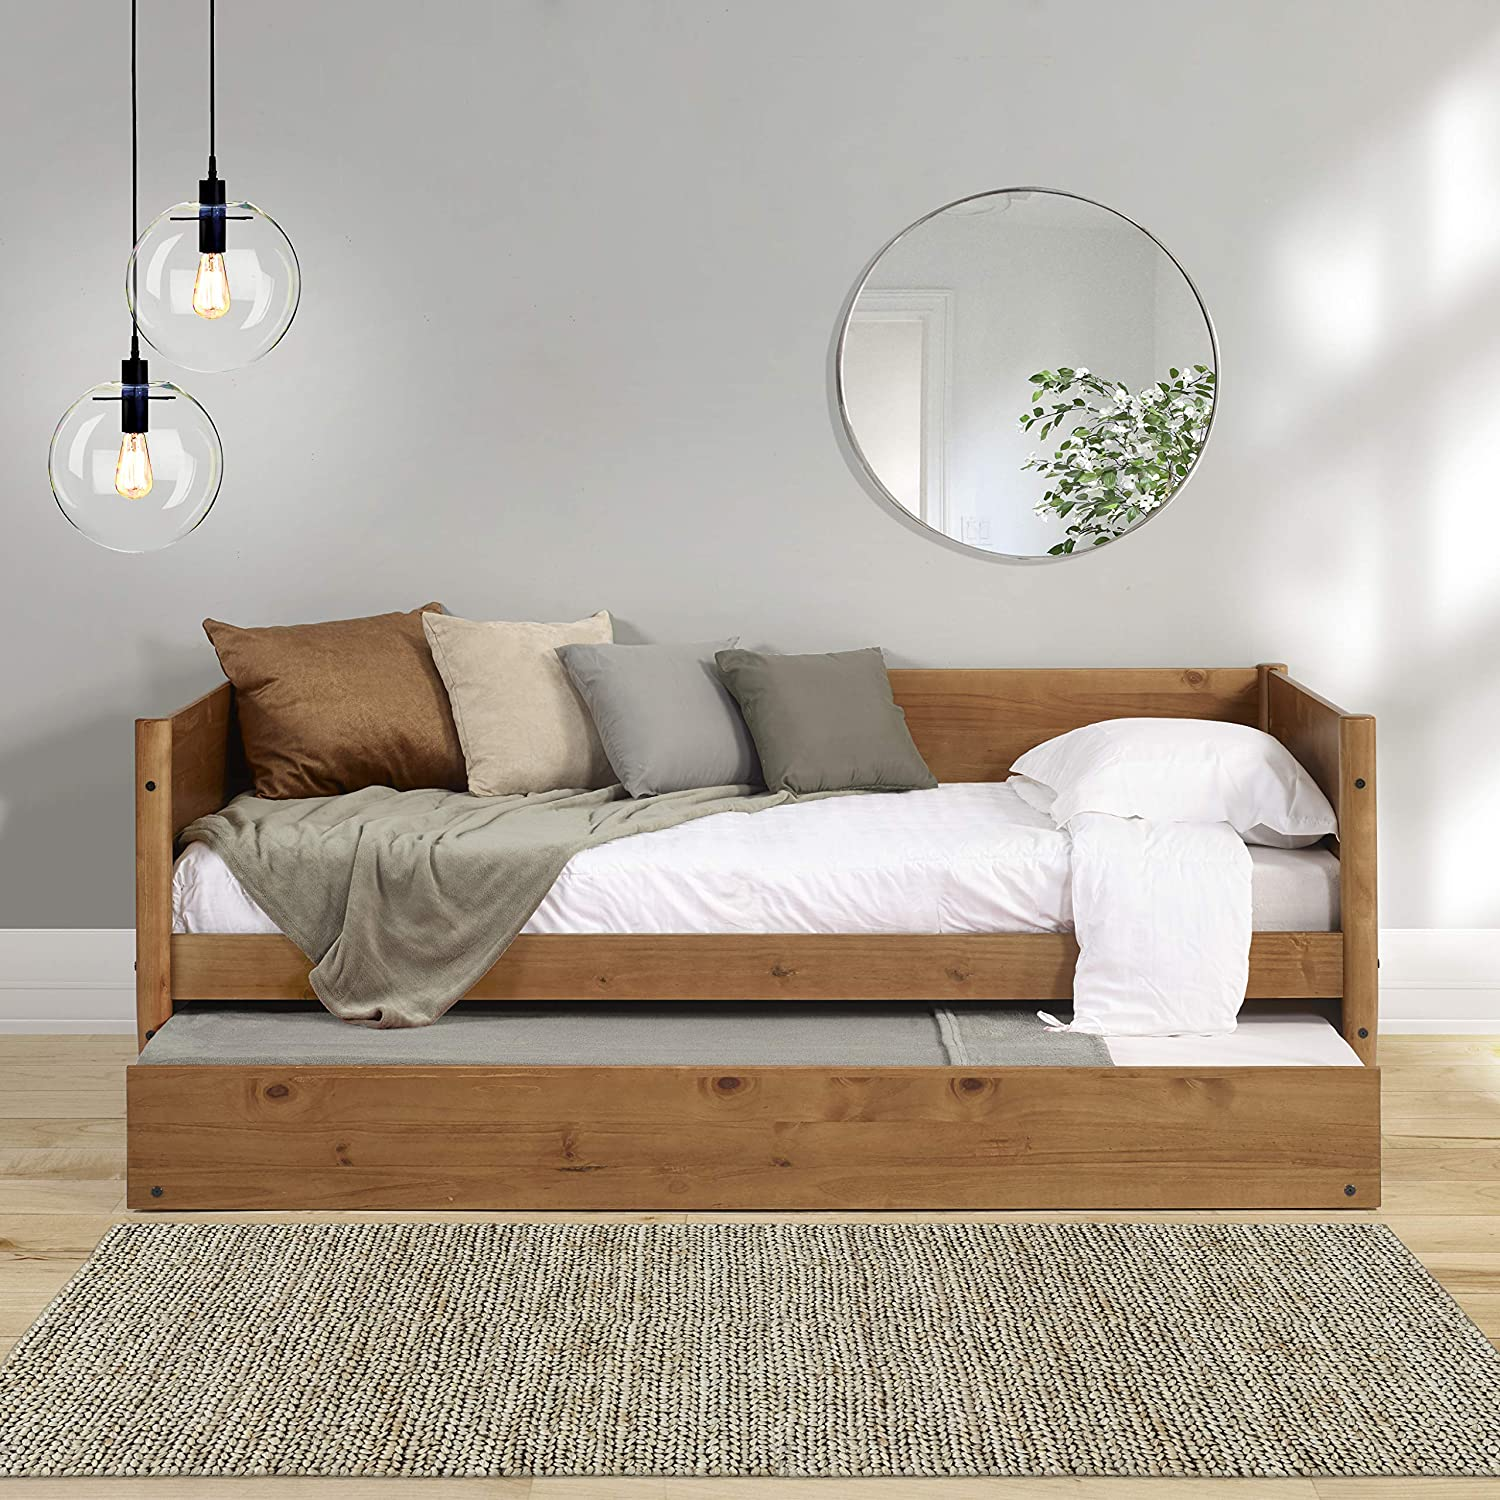 day beds are great for extra bed space